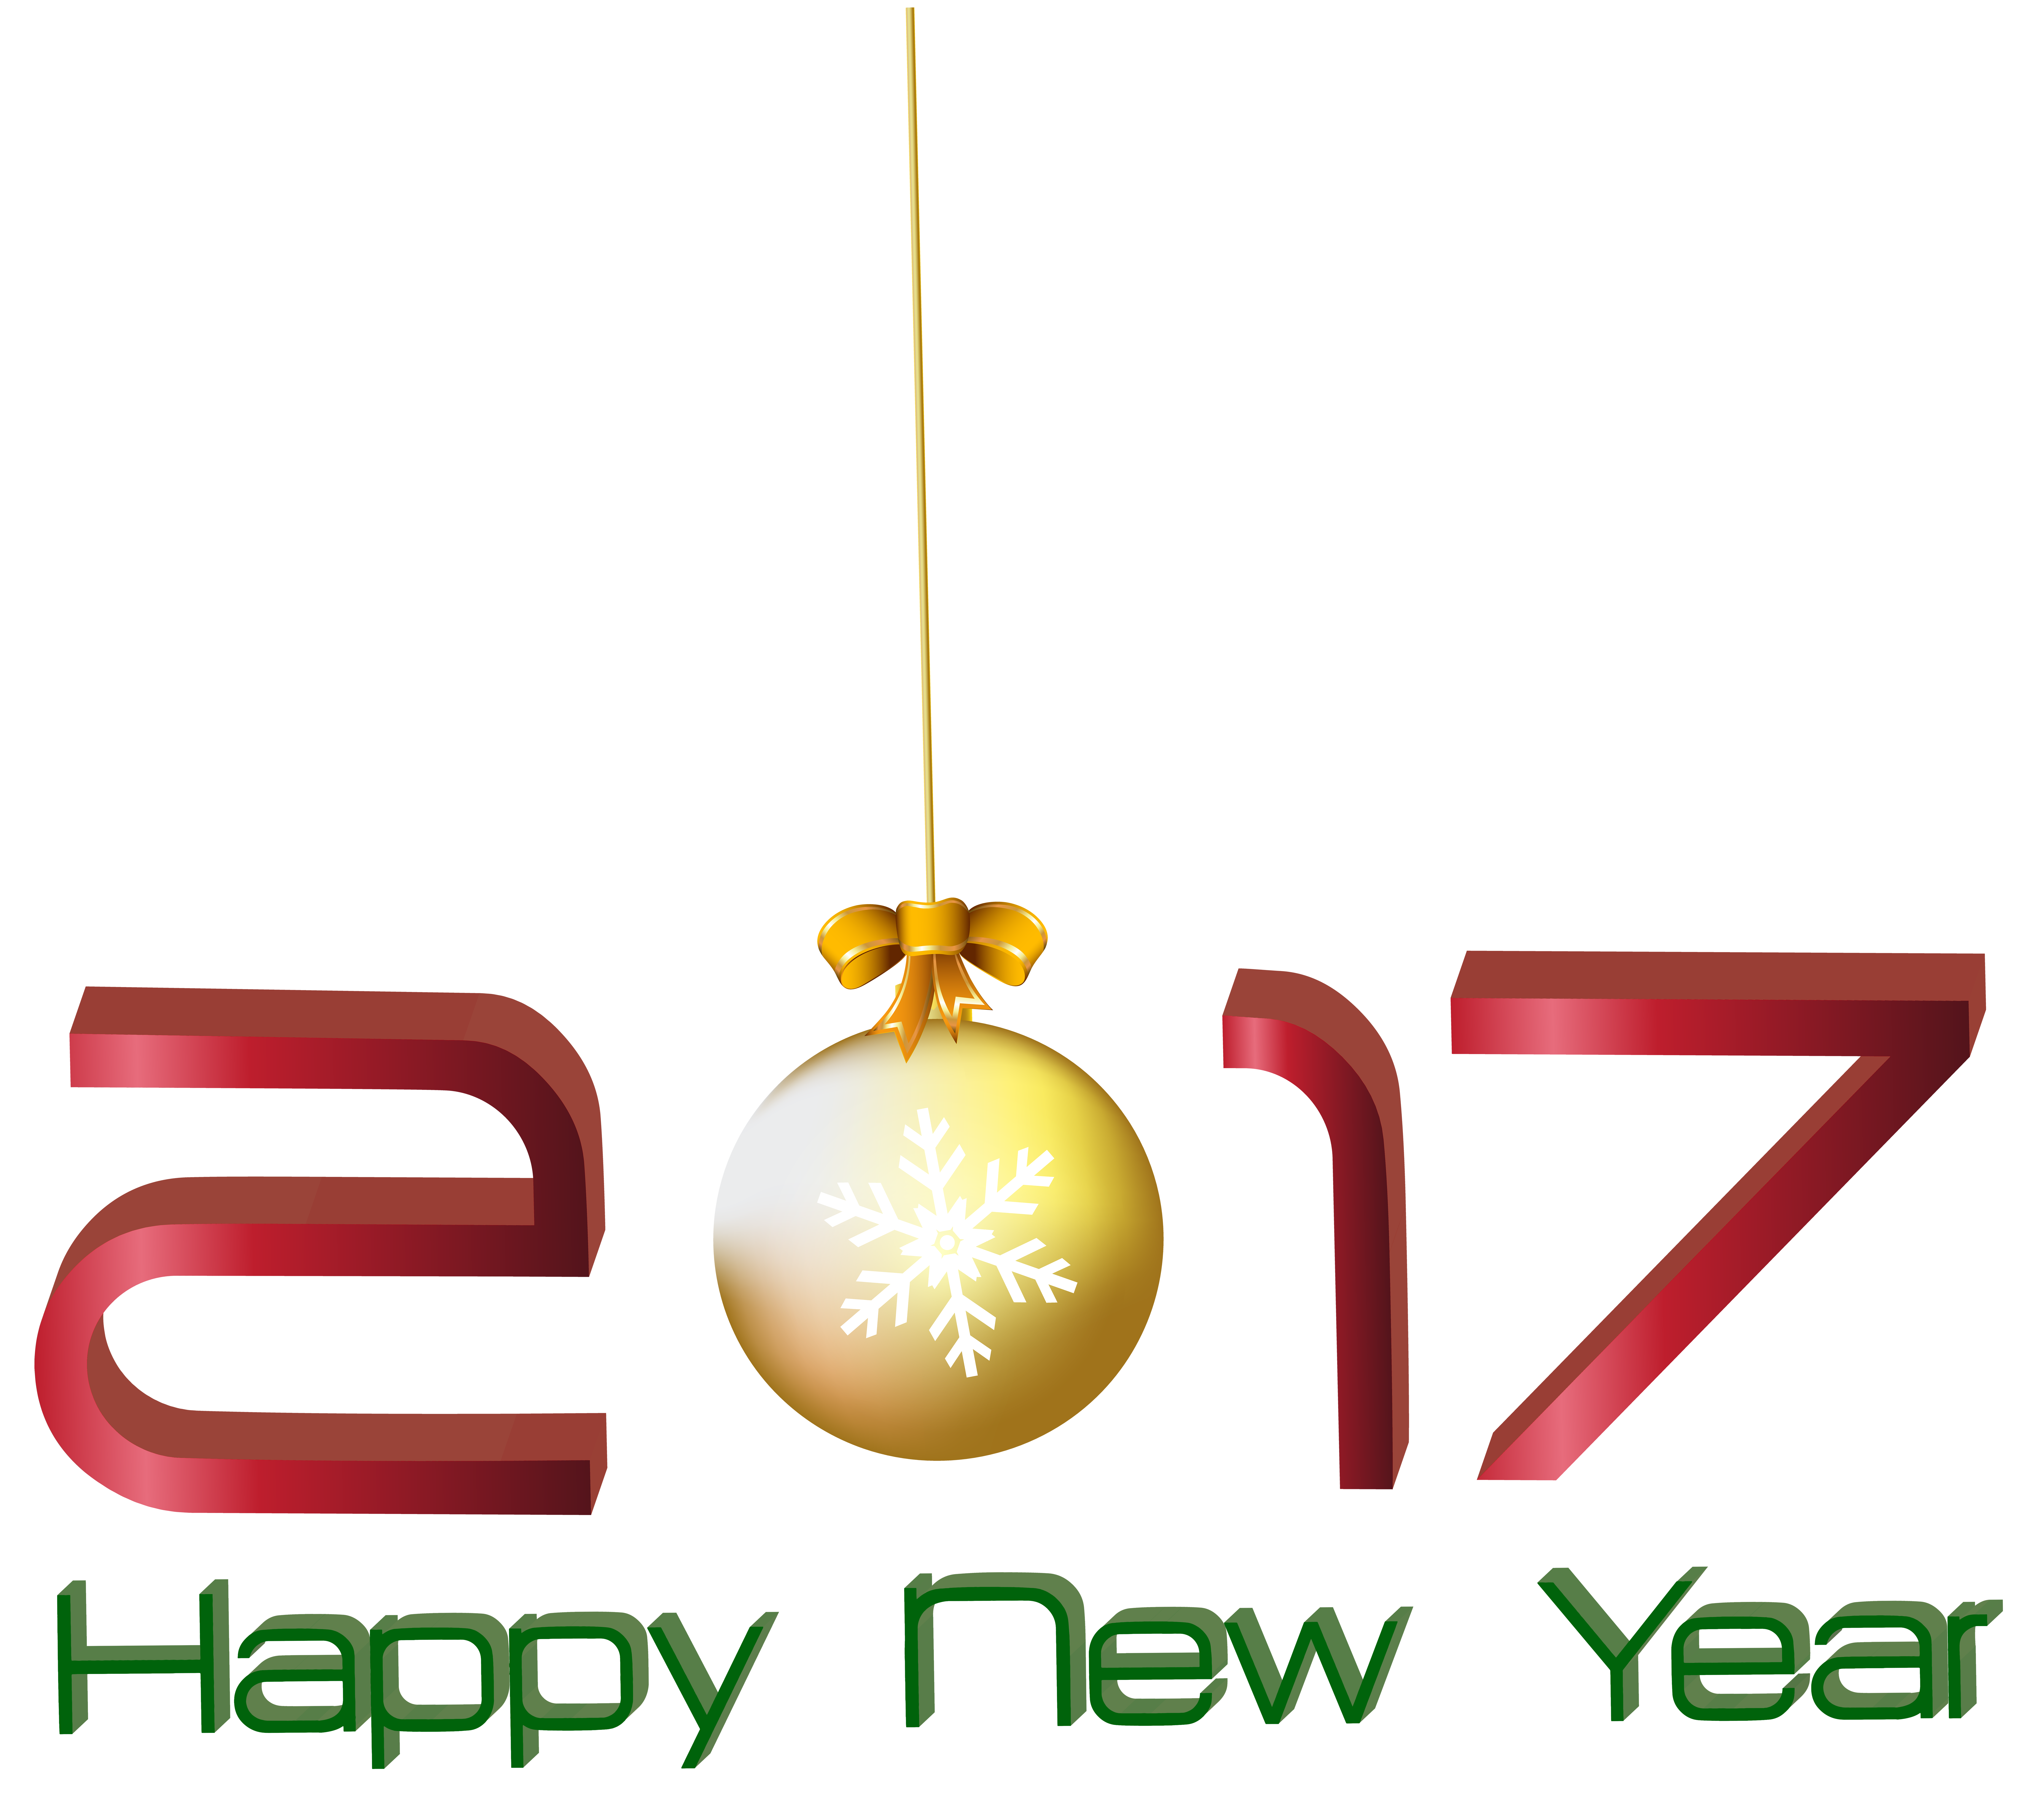 New year clip art png. Happy transparent image